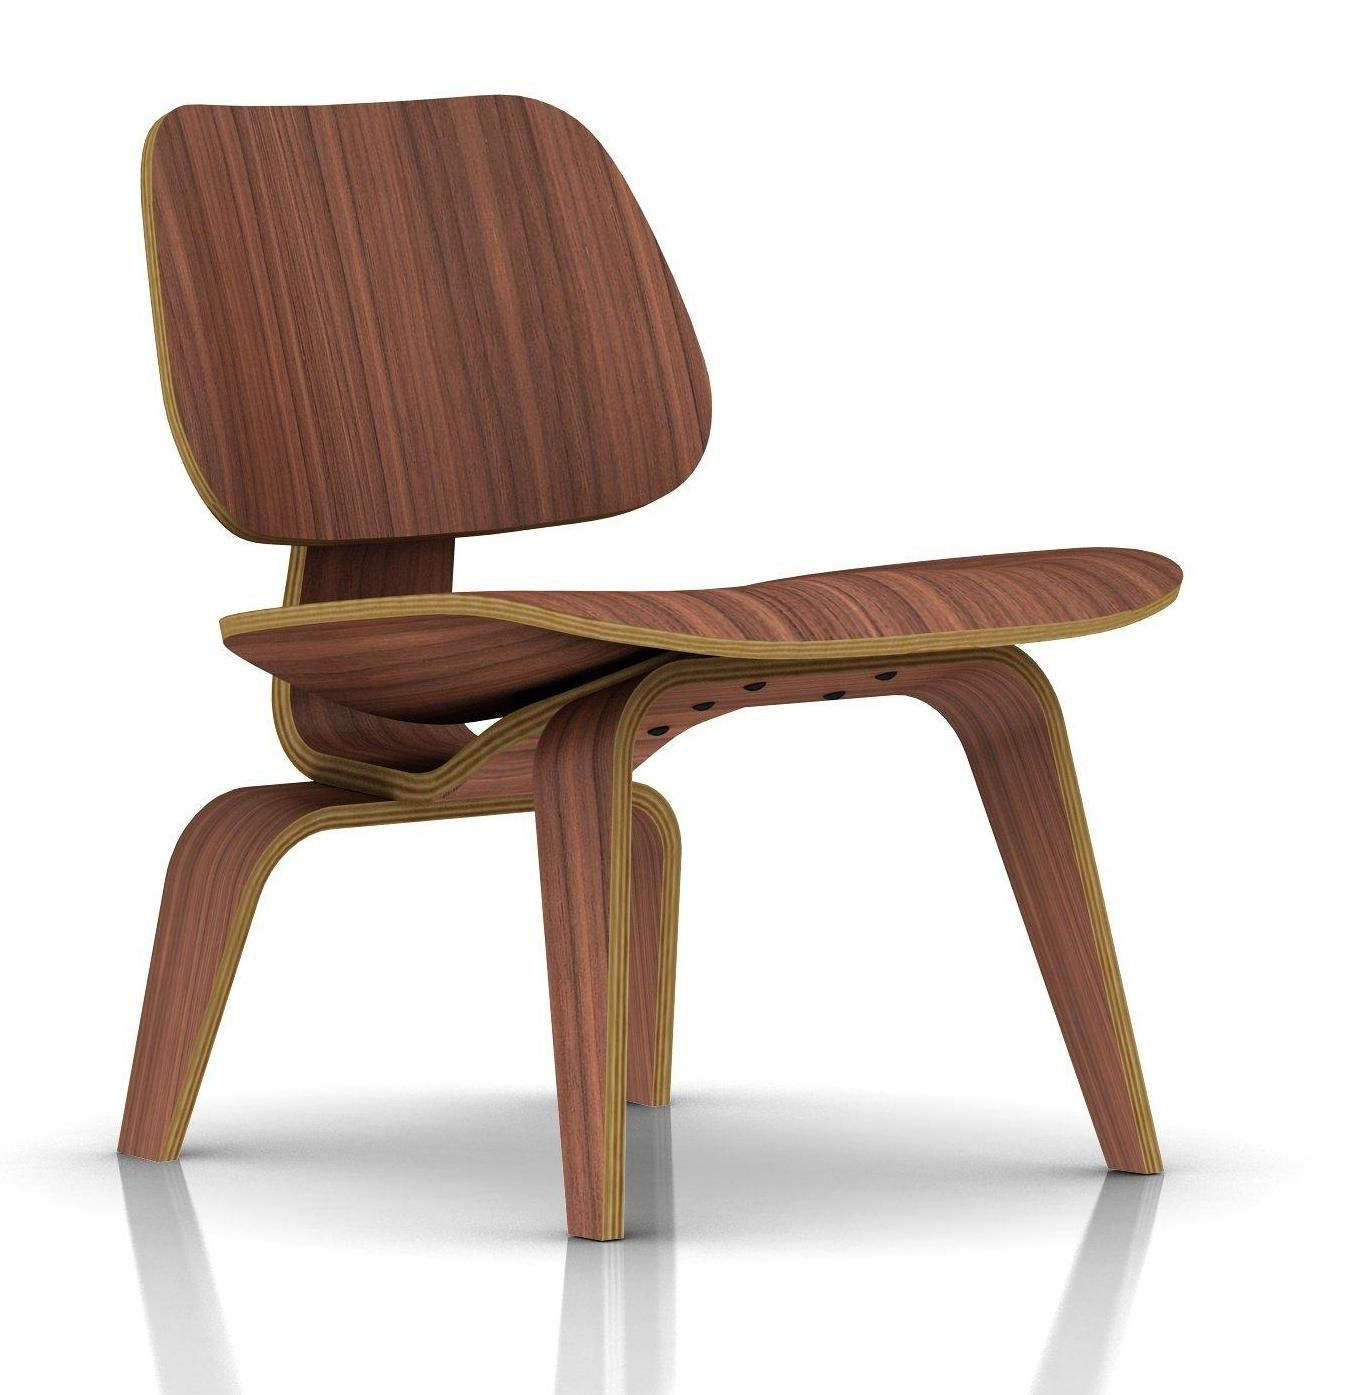 Eames Molded Plywood Chair Sperrholzstuhl, Eames und